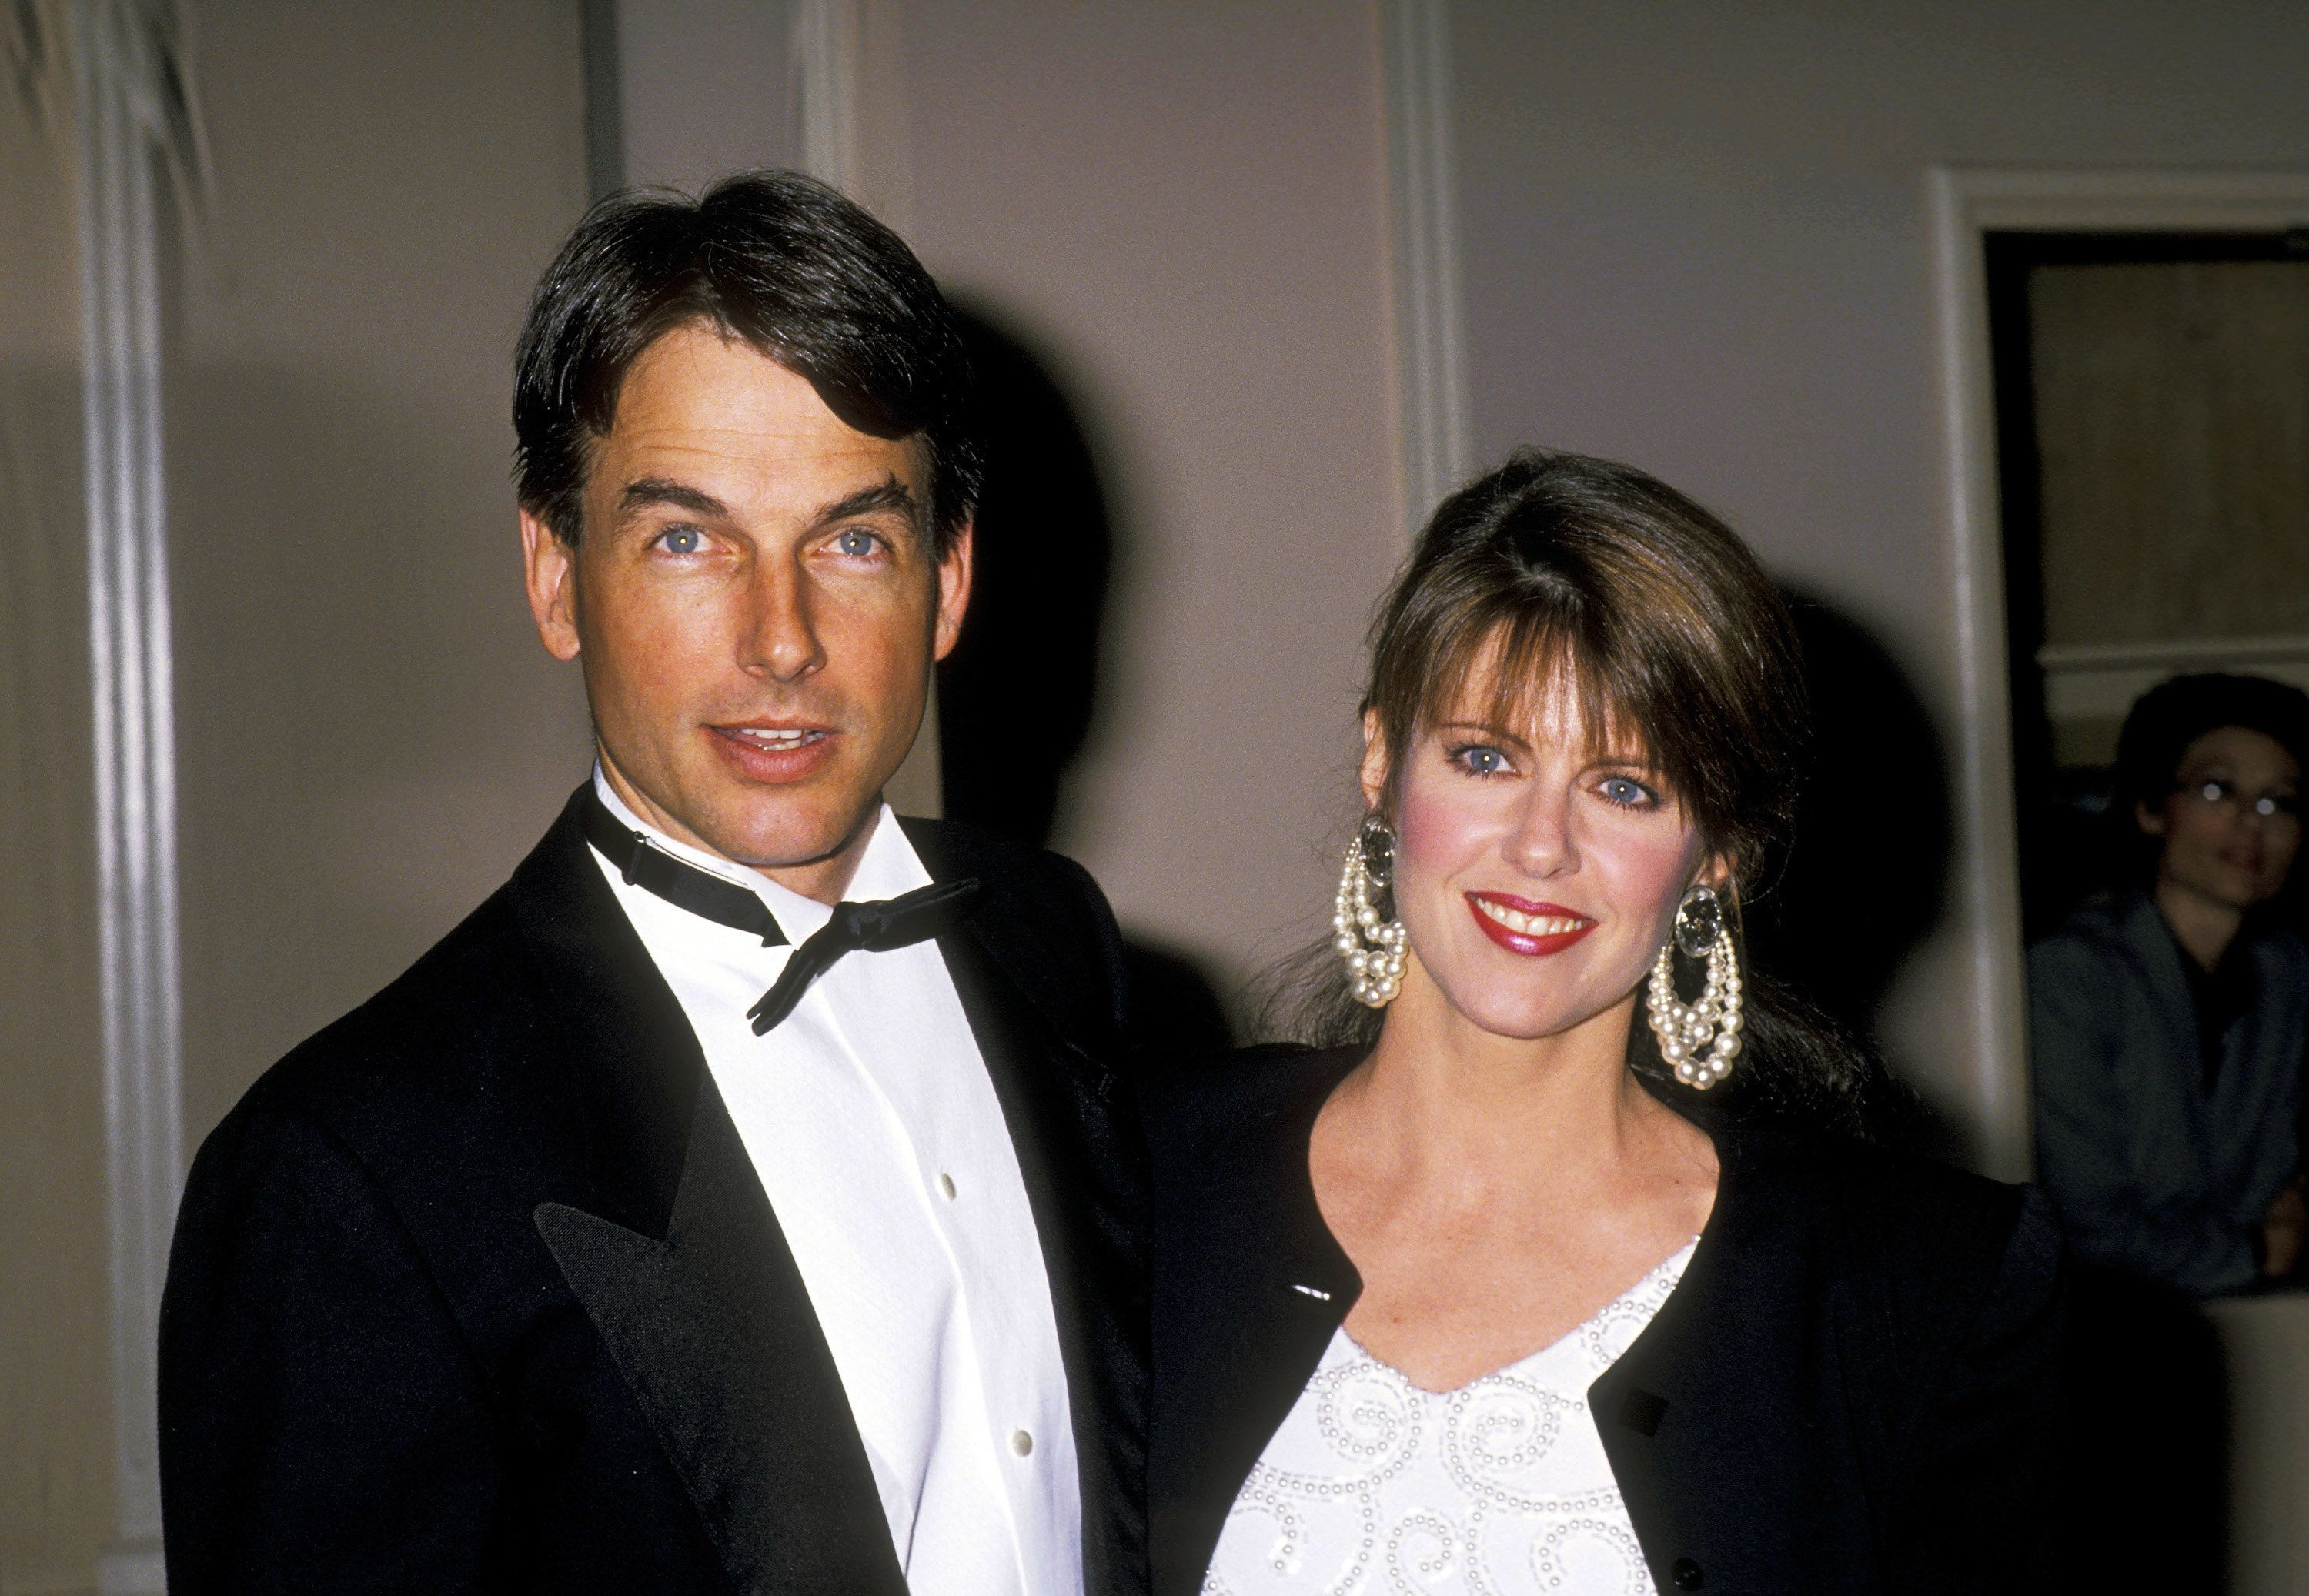 Pam Dawber and husband Mark Harmon at an event in 1989.